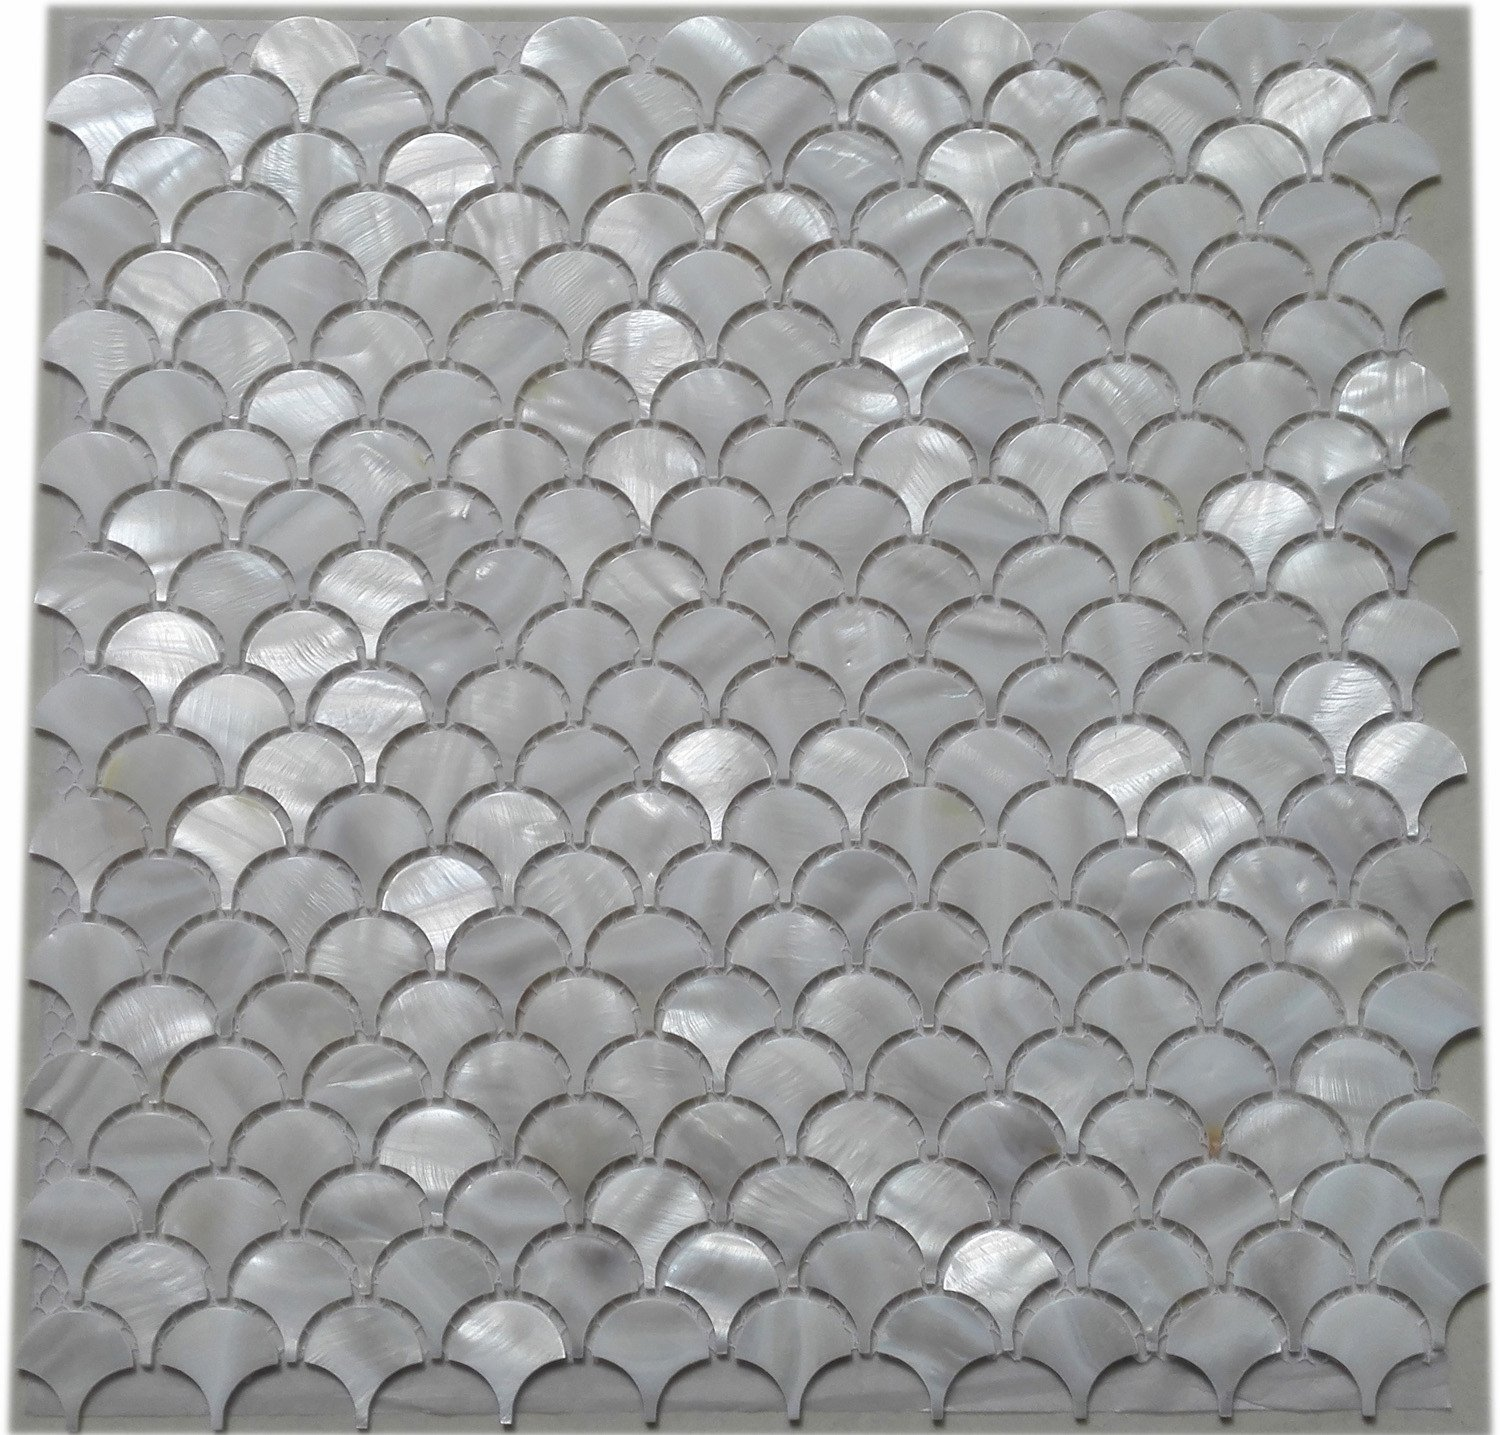 Amazon.com: 11PCS White Fish Scale Freshwater Shell Mosaic Tile ...